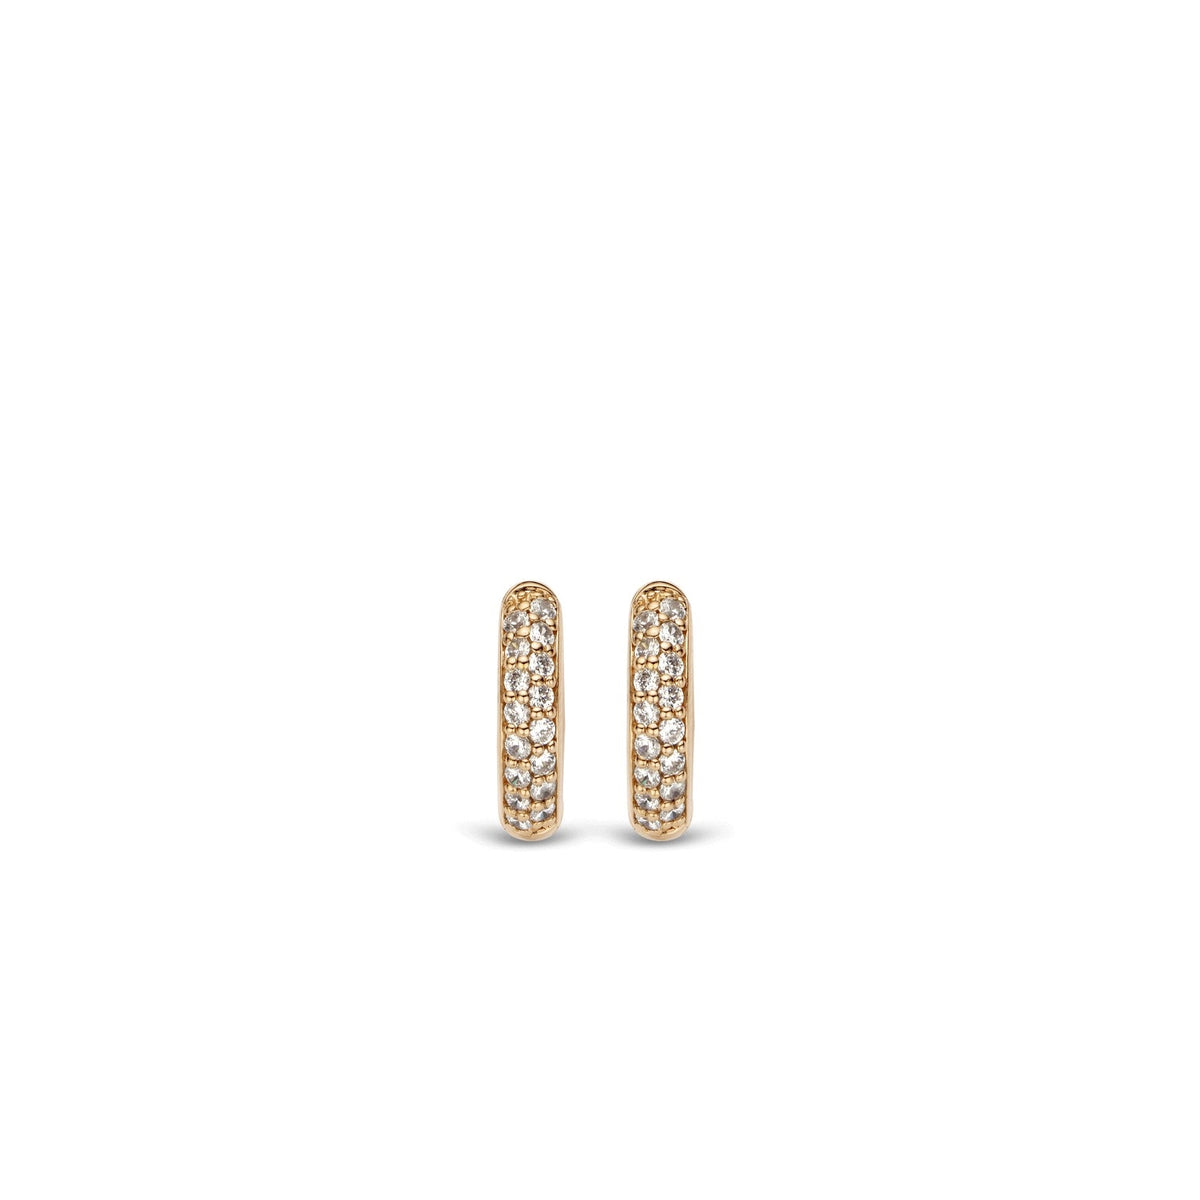 TI SENTO Sterling Silver Rose Tone Huggie Earrings with Pave Cubic Zirconia